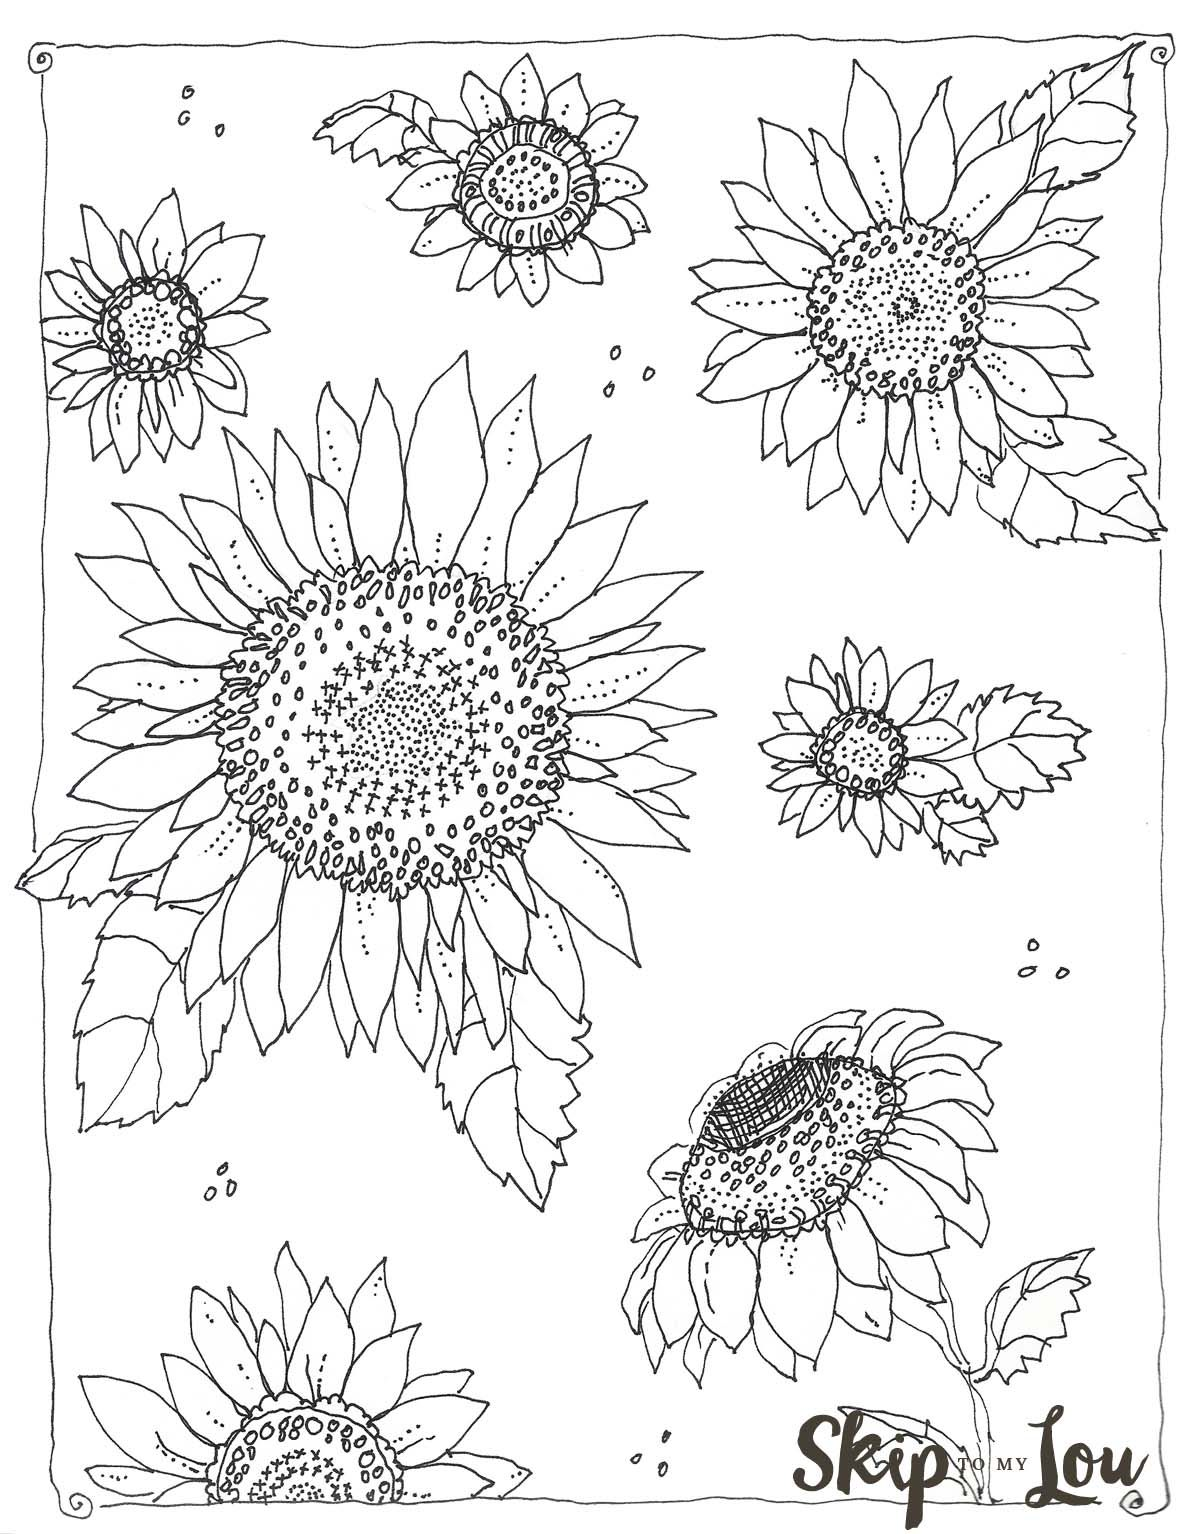 Sunflower Coloring Page Sunflower Coloring Pages Coloring Book Pages Coloring Pages For Teenagers